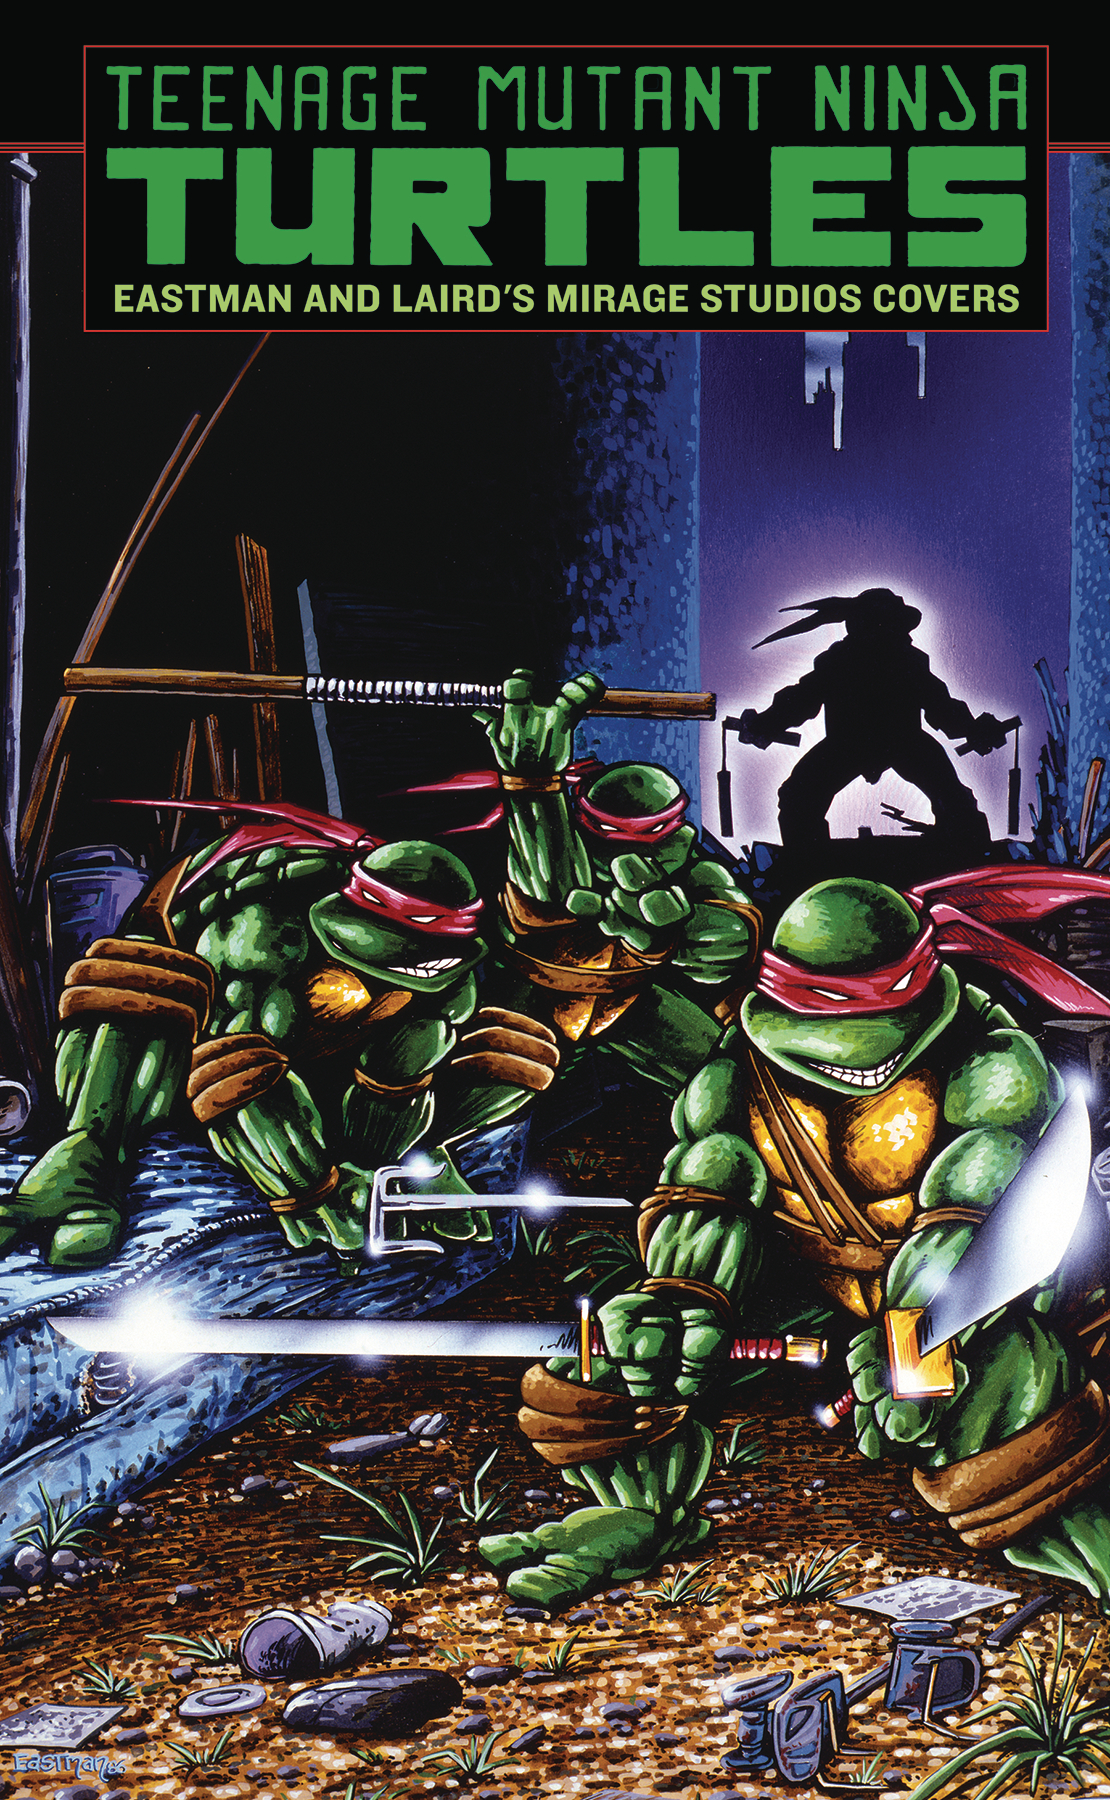 TMNT EASTMAN & LAIRD MIRAGE STUDIOS COVERS HC